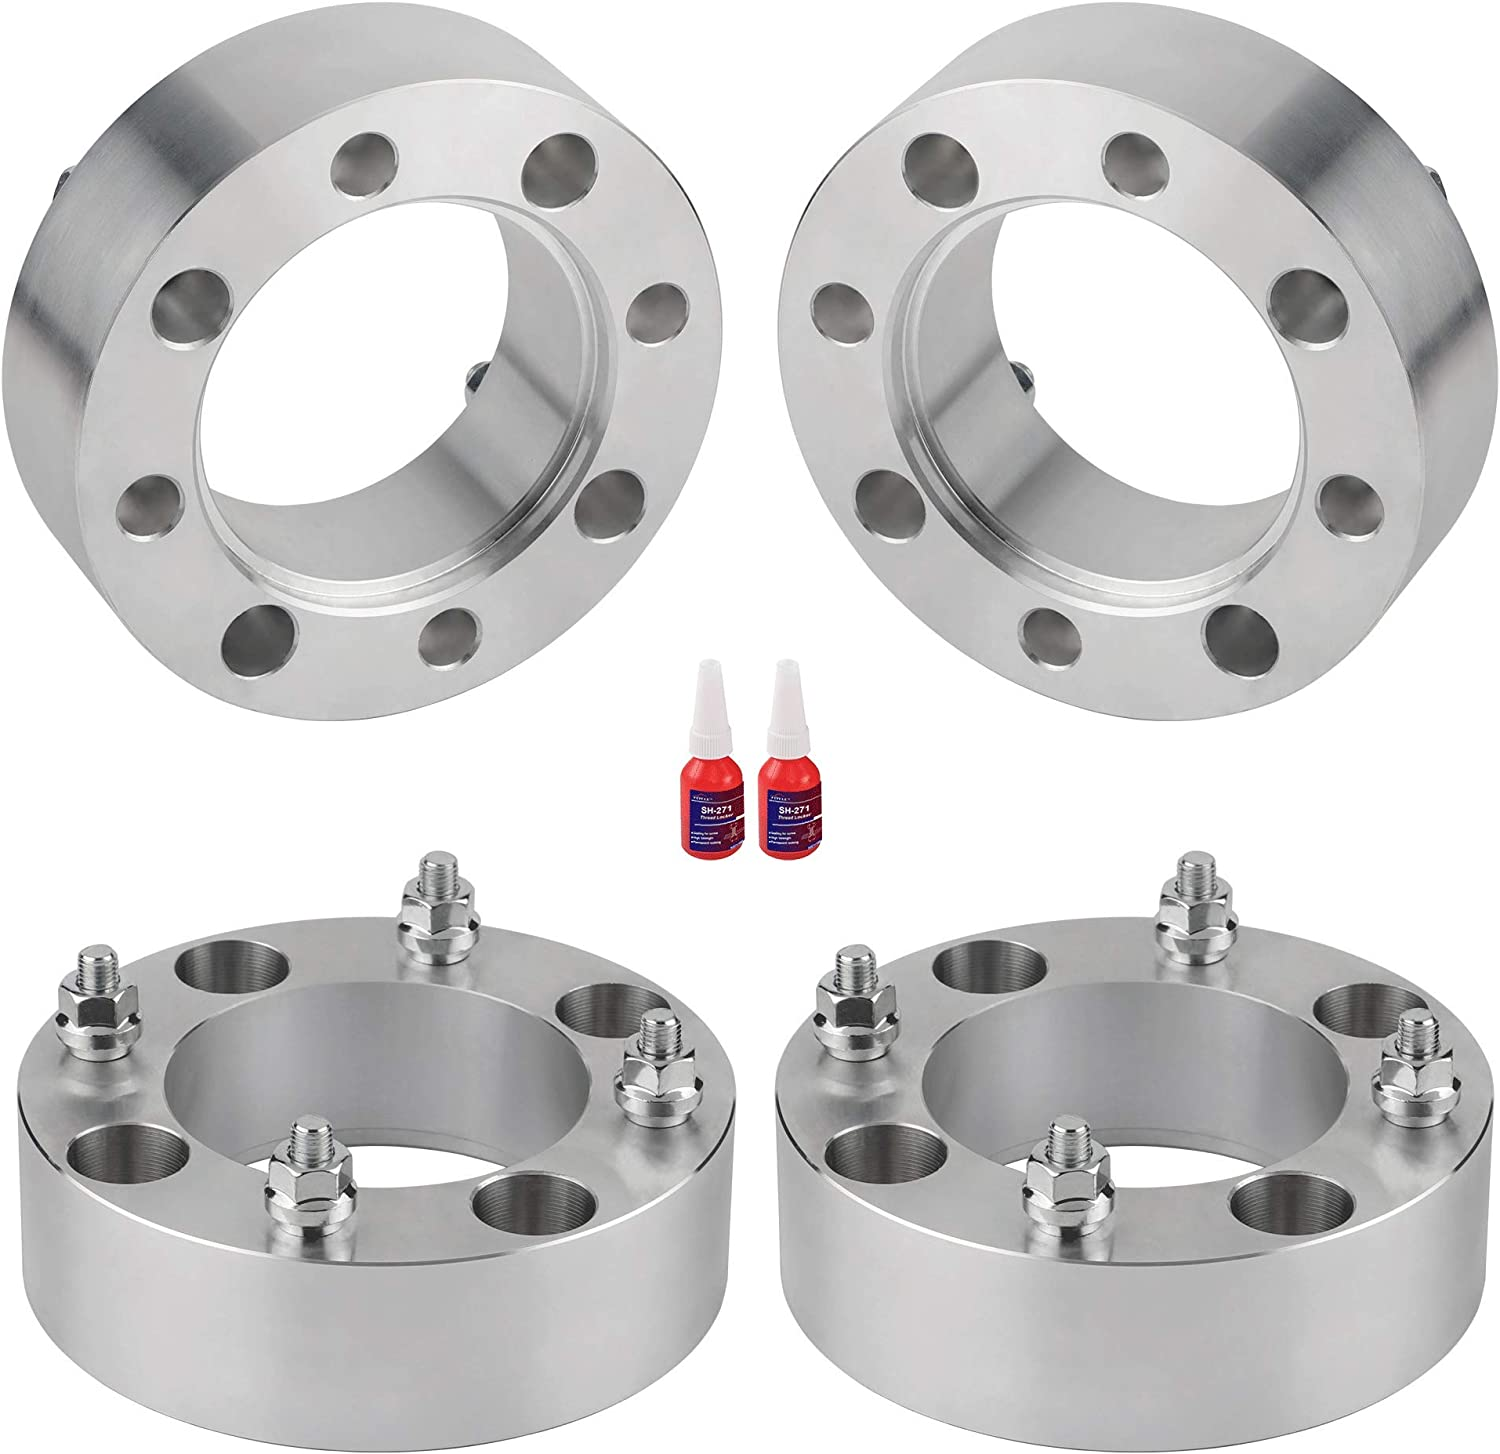 FLYCLE 4 Pcs 4x137 to 4x137 ATV Wheel Spacers,2 4x137 wheel spacer 110mm 10x1.25 Studs for CAN-AM Bombardier Outlander Commander Kawasaki Mule